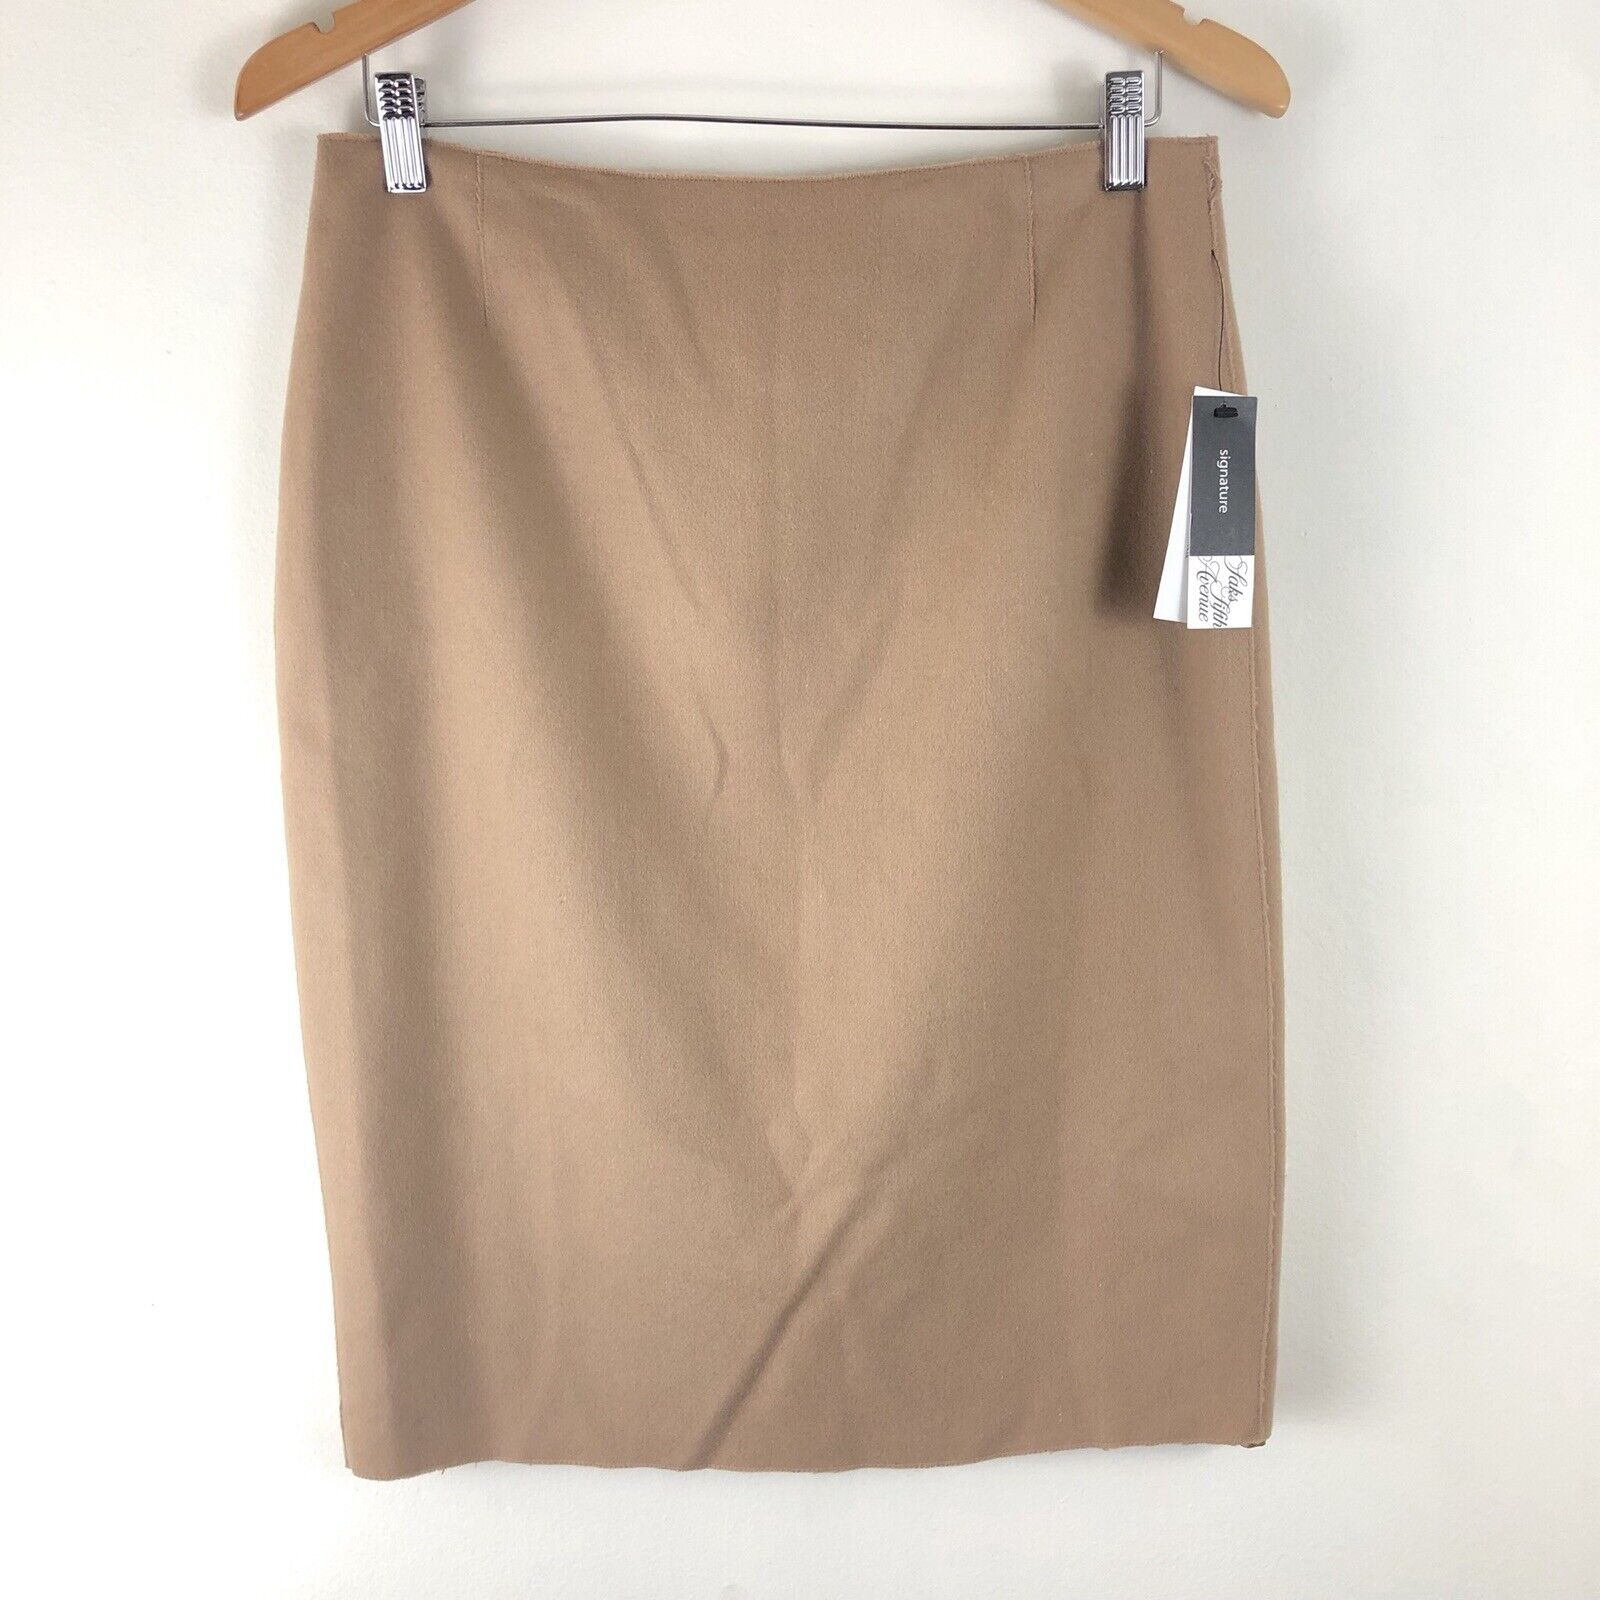 Ny Saks Fifth Avenue 8 Wool Tan Pencil kjol Camel NWT  268 Sidenia kjol